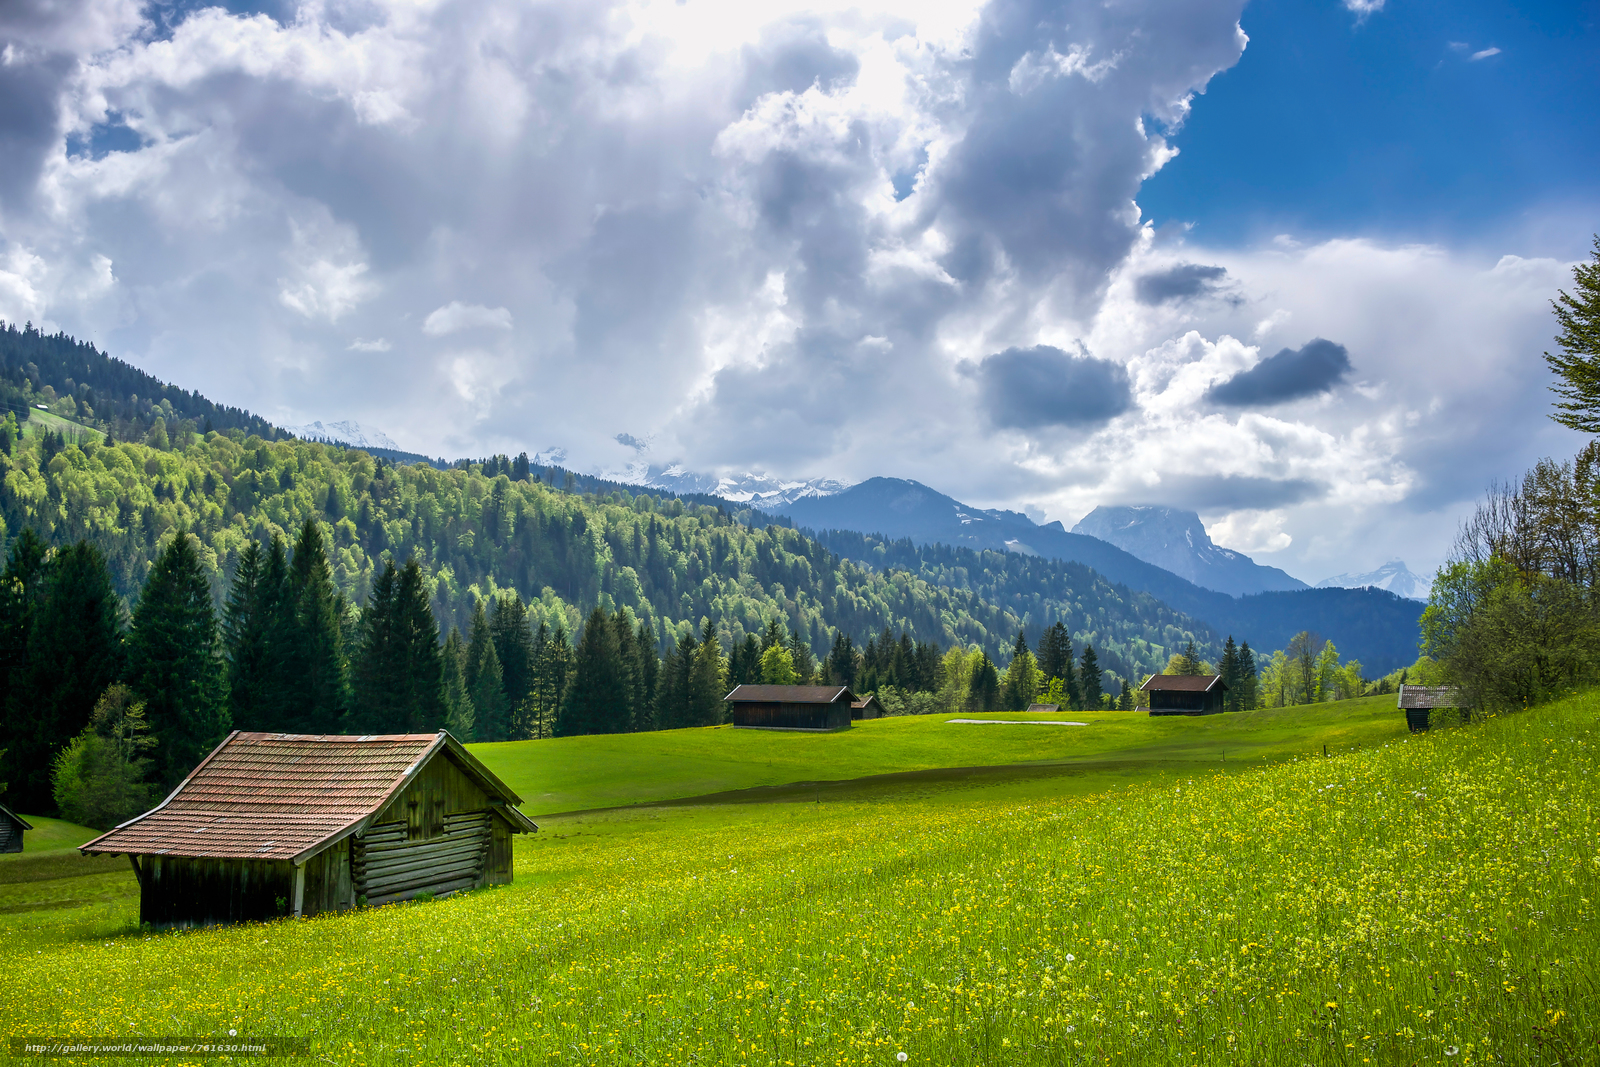 Mittenwald, Garmisch, Germany, Alps, field, hills, the mountains, lodge, trees, landscape